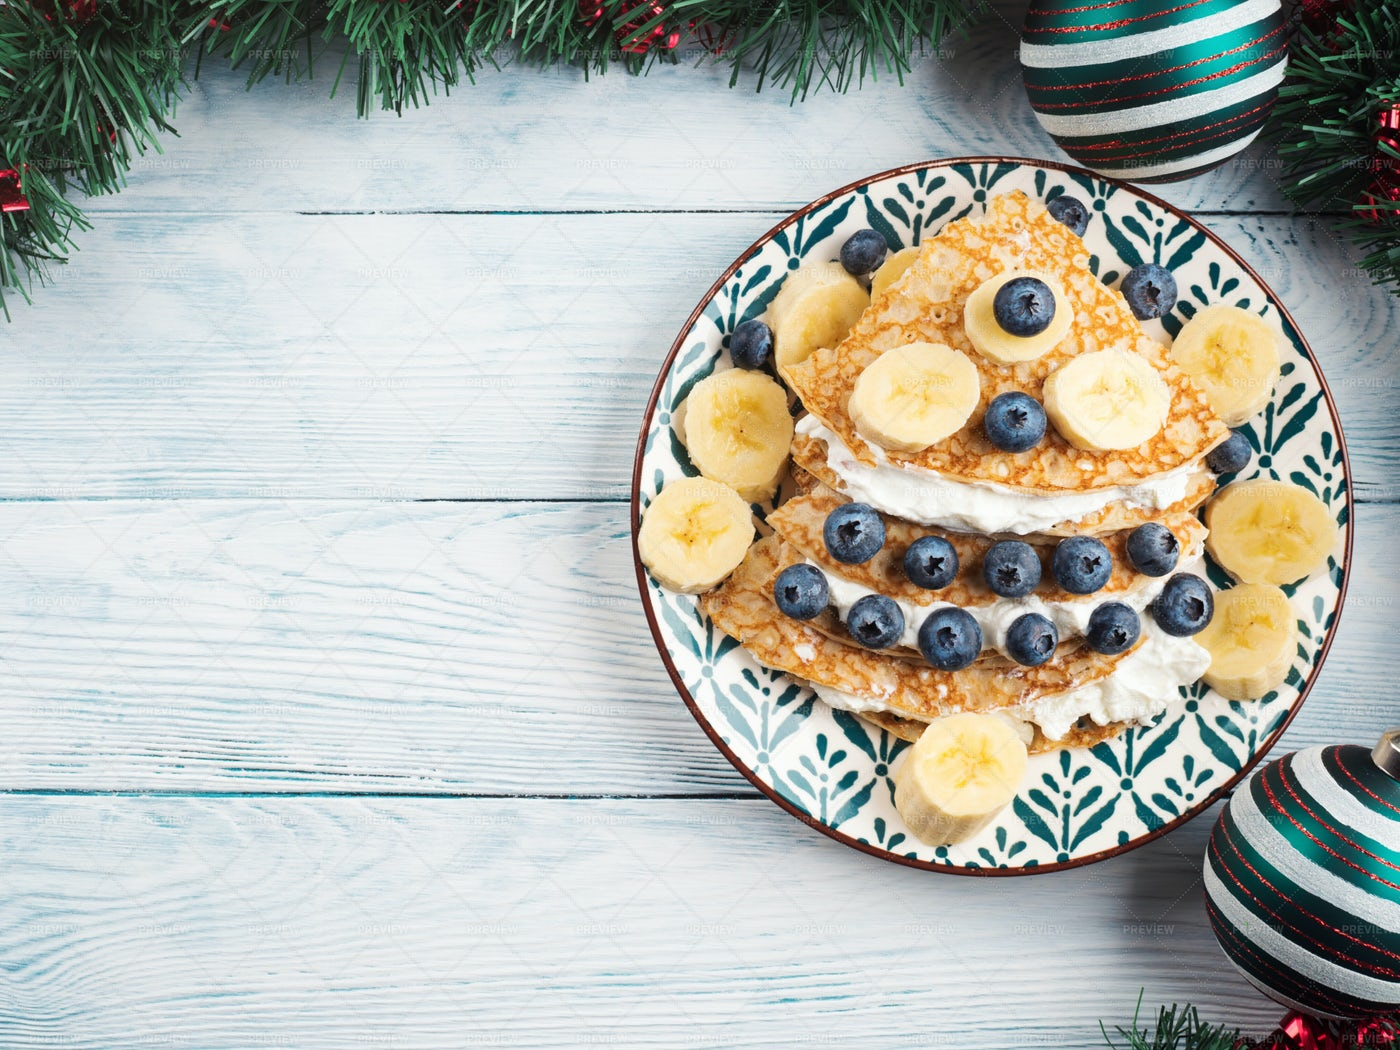 Crepes Shaped In Christmas Tree: Stock Photos